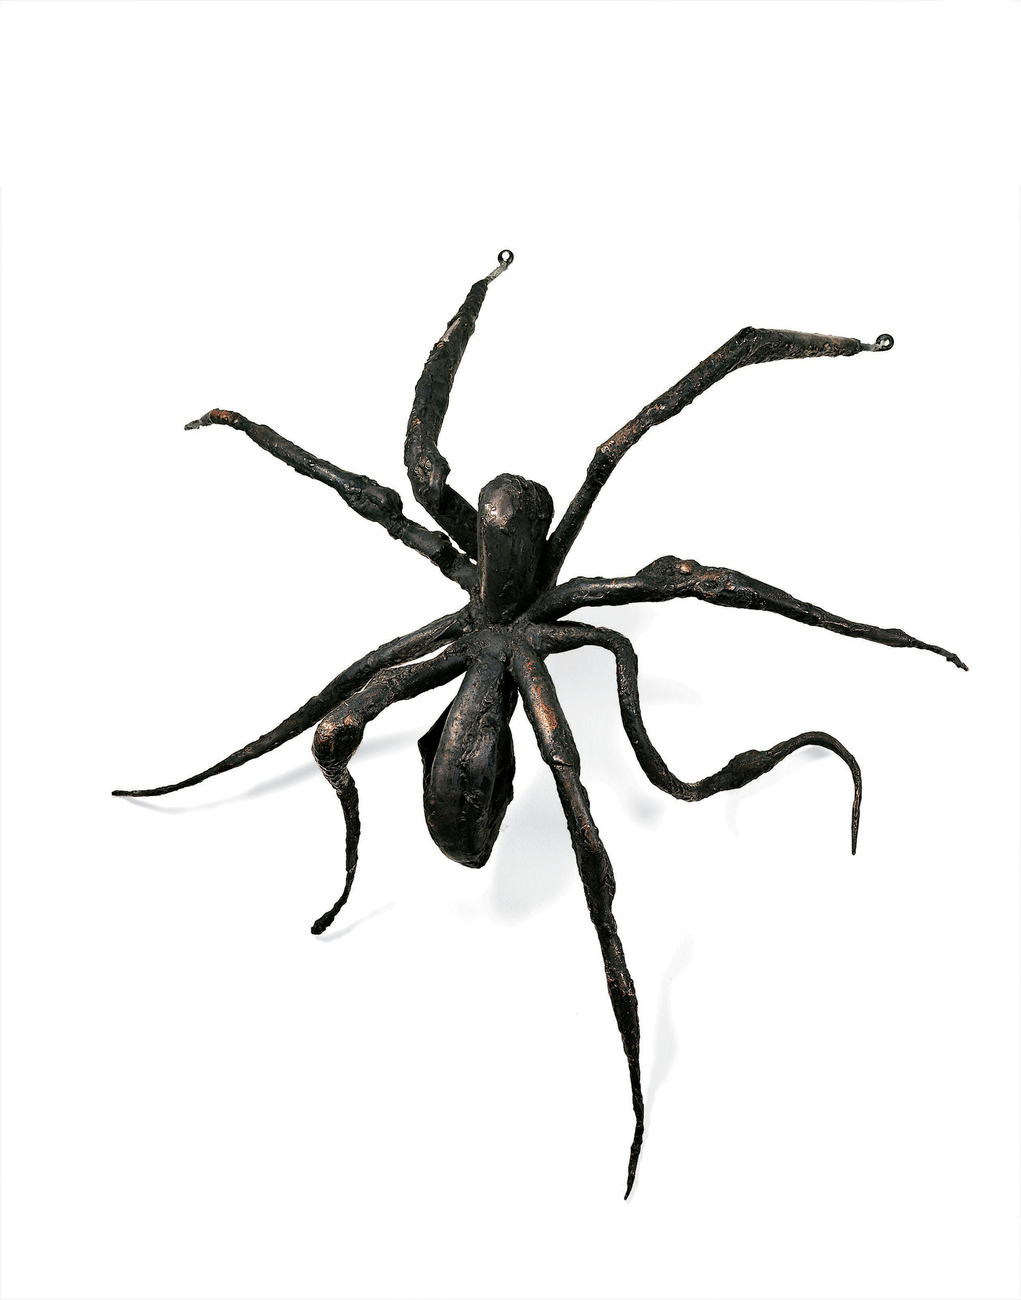 A cast metal spider